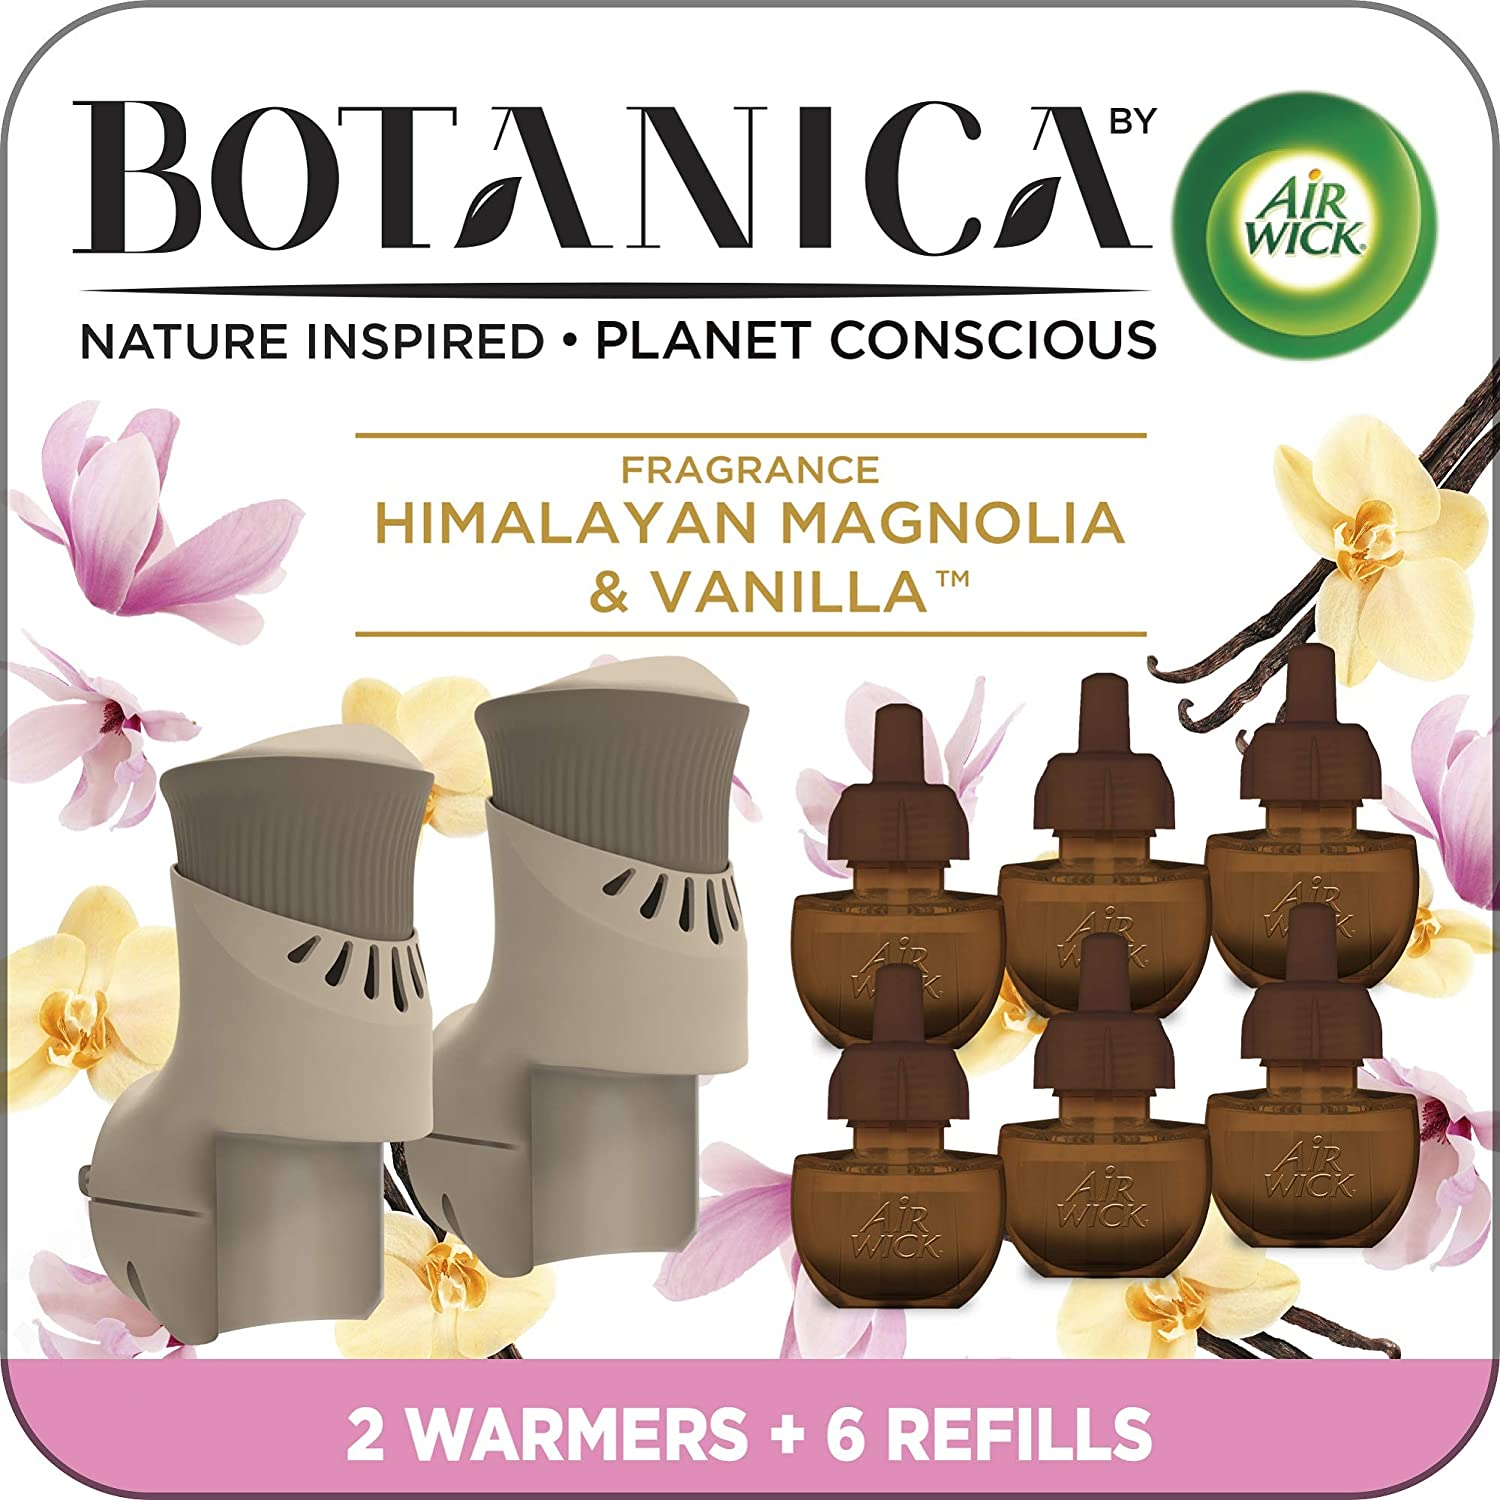 Botanica by Air Wick Plug in Scented Oil Starter Kit, 2 Warmers + 6 Refills, Himalayan Magnolia and Vanilla, Air Freshener, Eco Friendly, Essential Oils